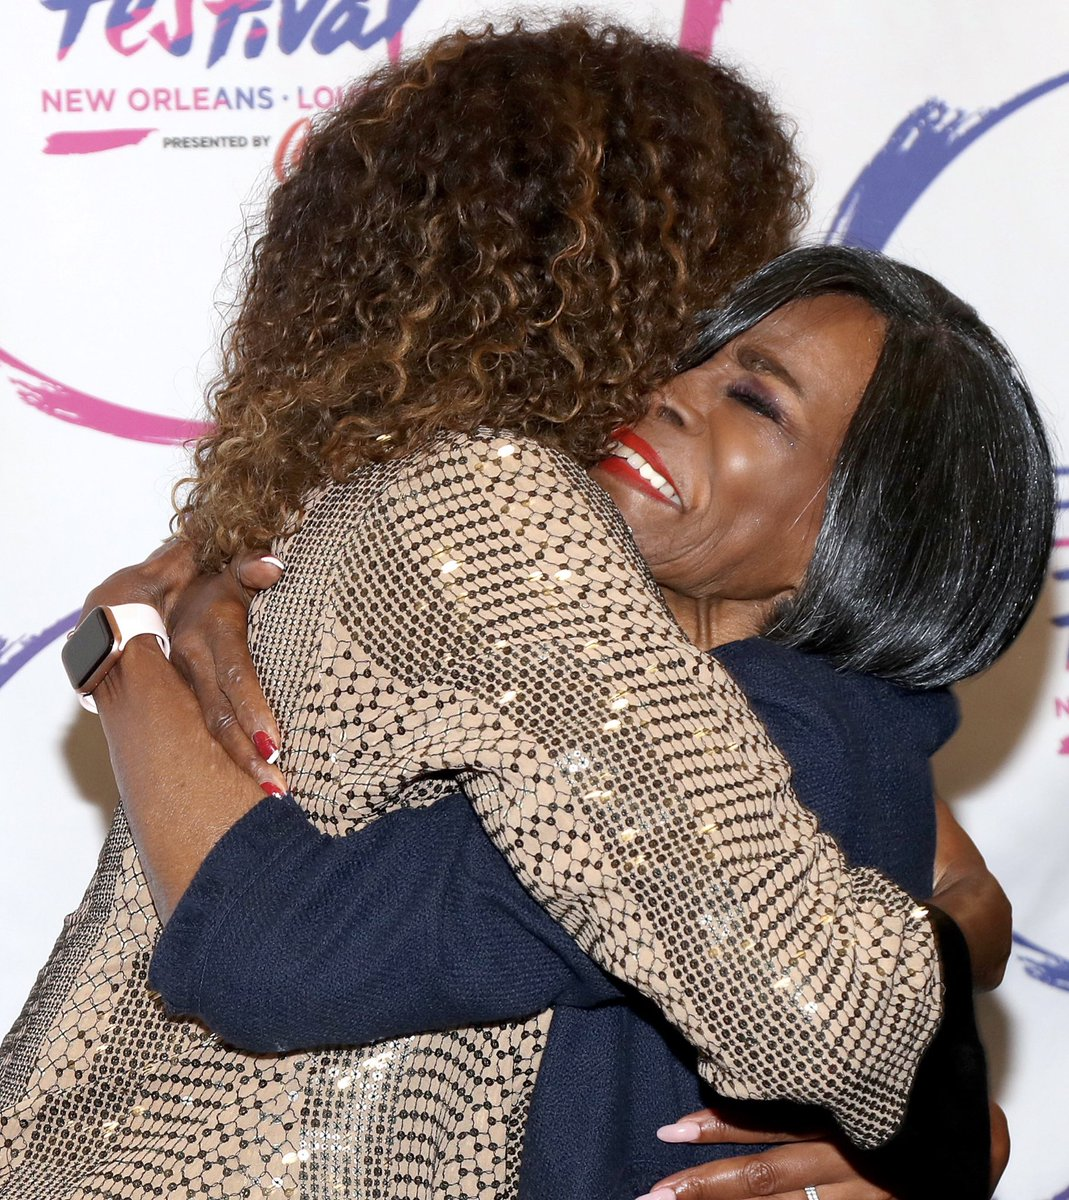 What struck me every time I spent time with Cicely Tyson was not necessarily her star power—though that was evident enough—it was her humanity. Just by walking into a room, she had this way of elevating everyone around her.